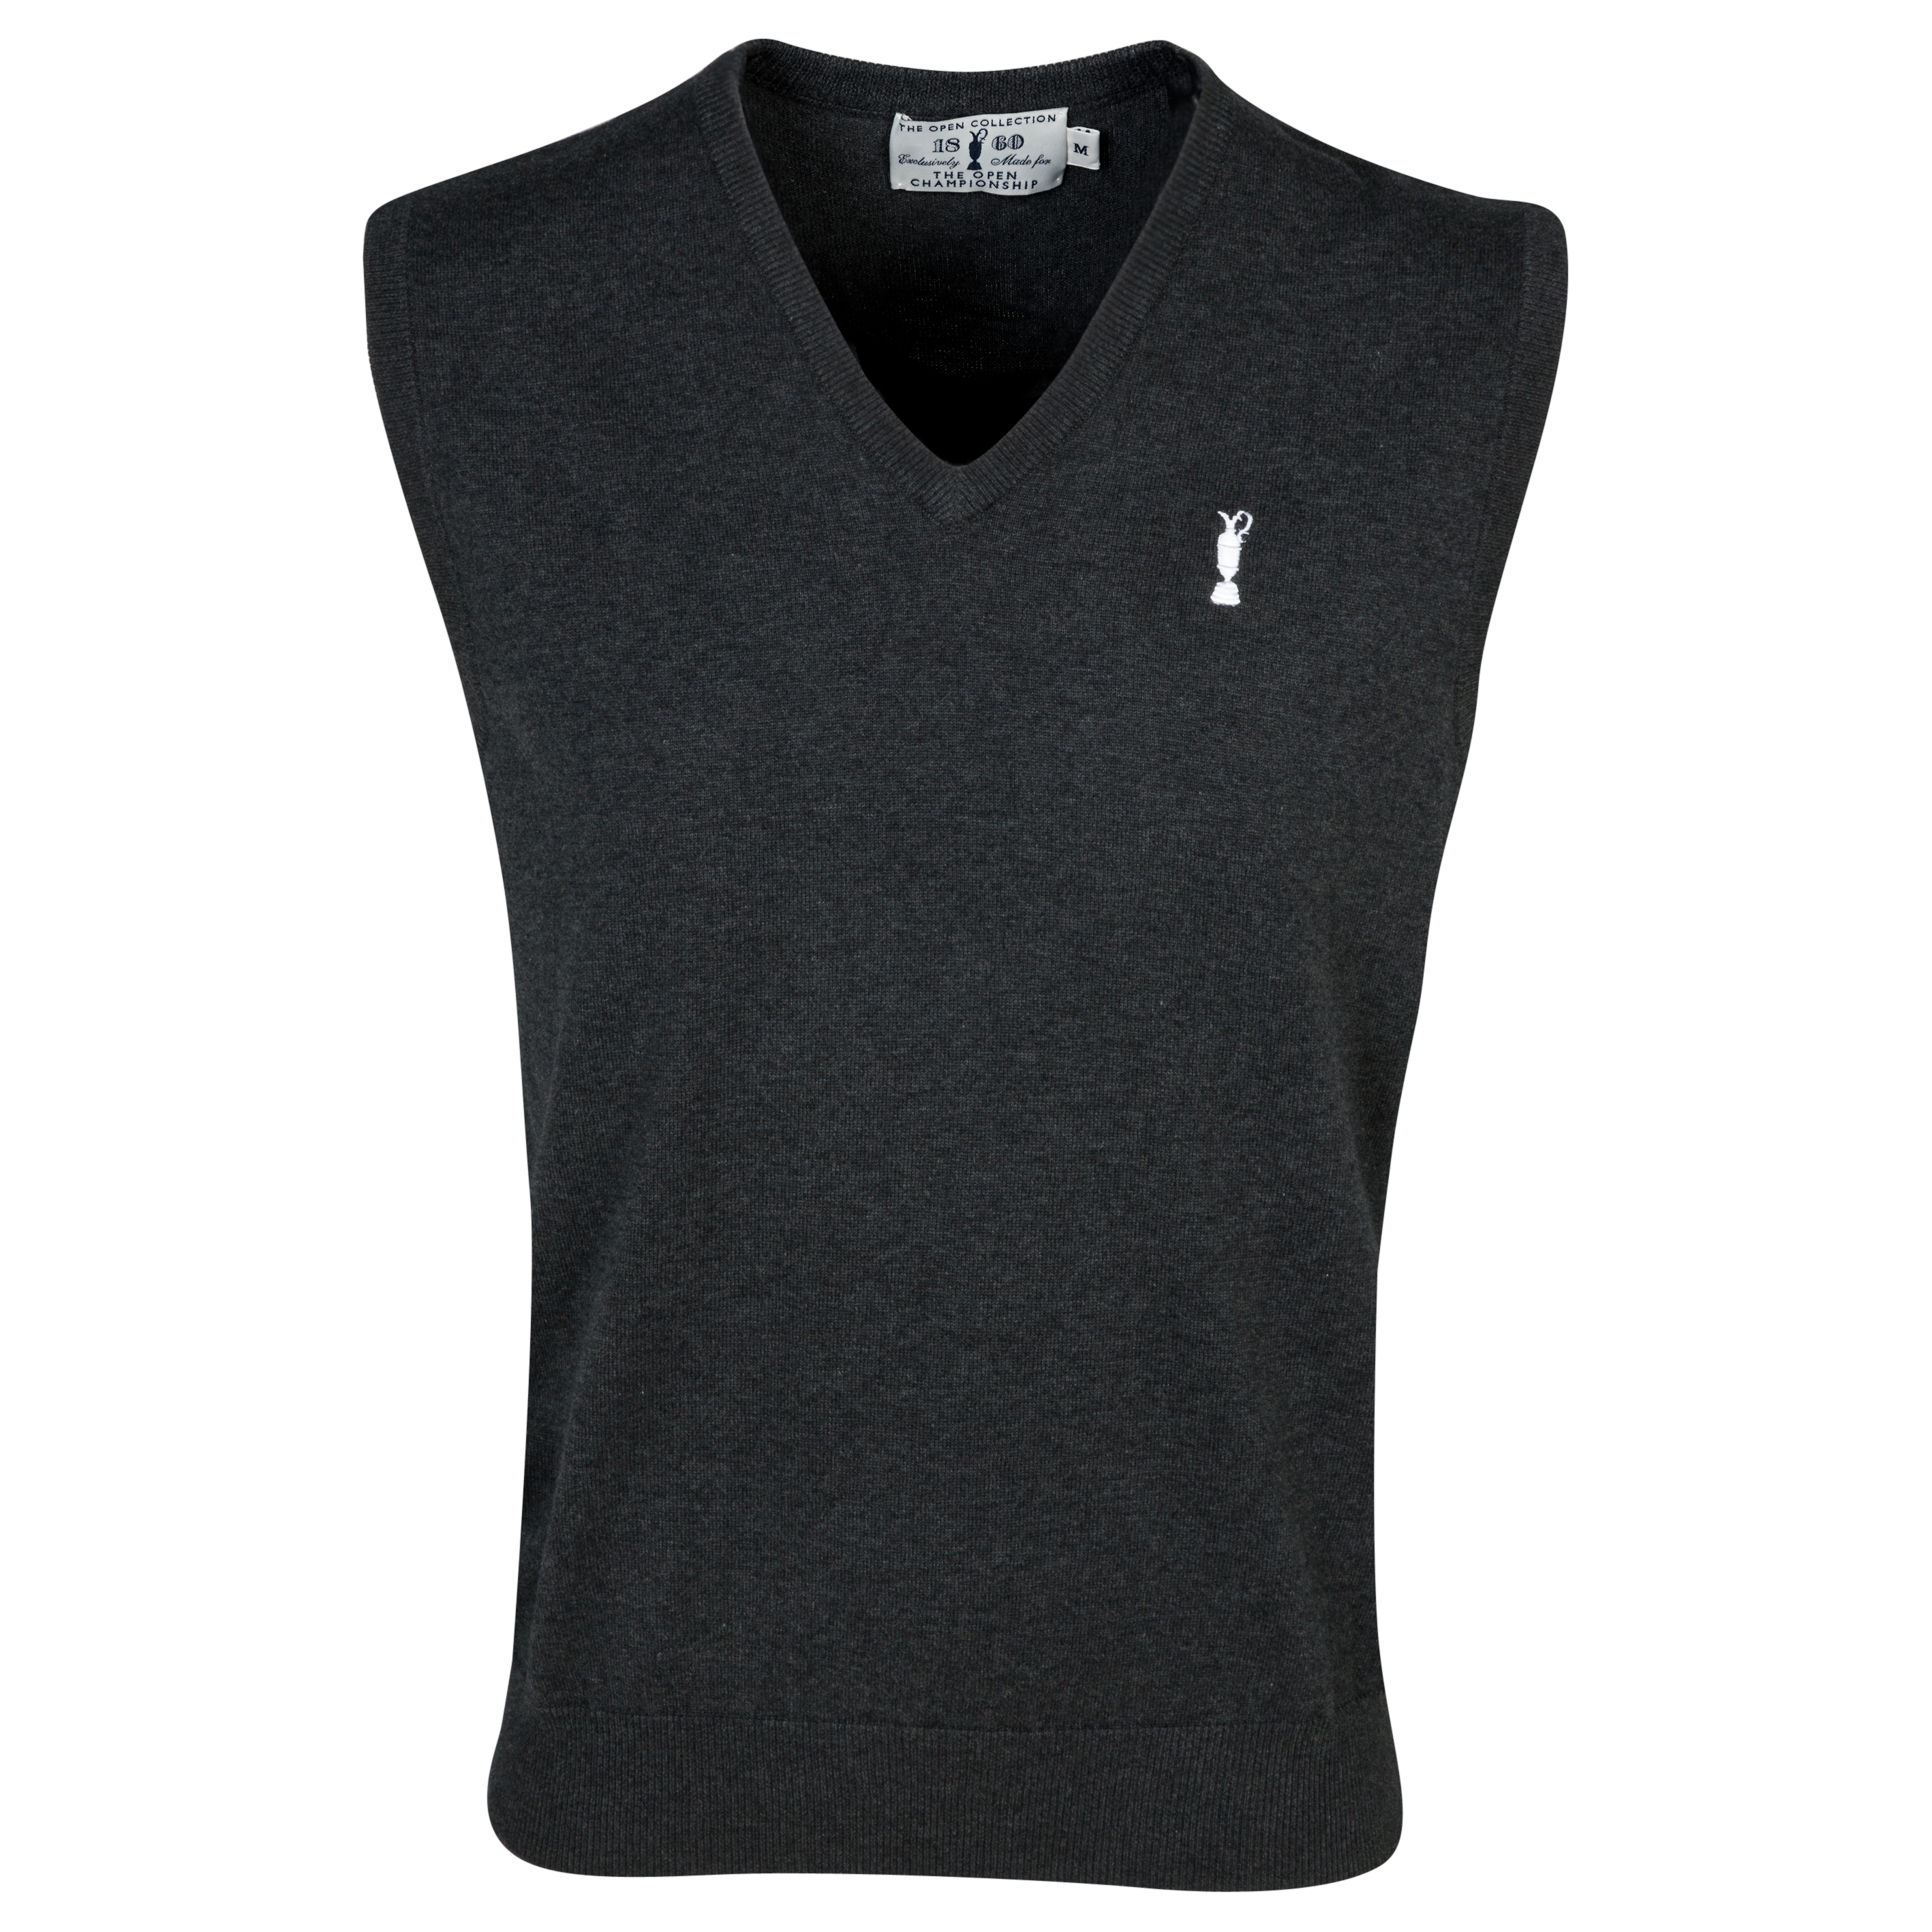 The Open Championship Collection - V-Neck Vest Grey